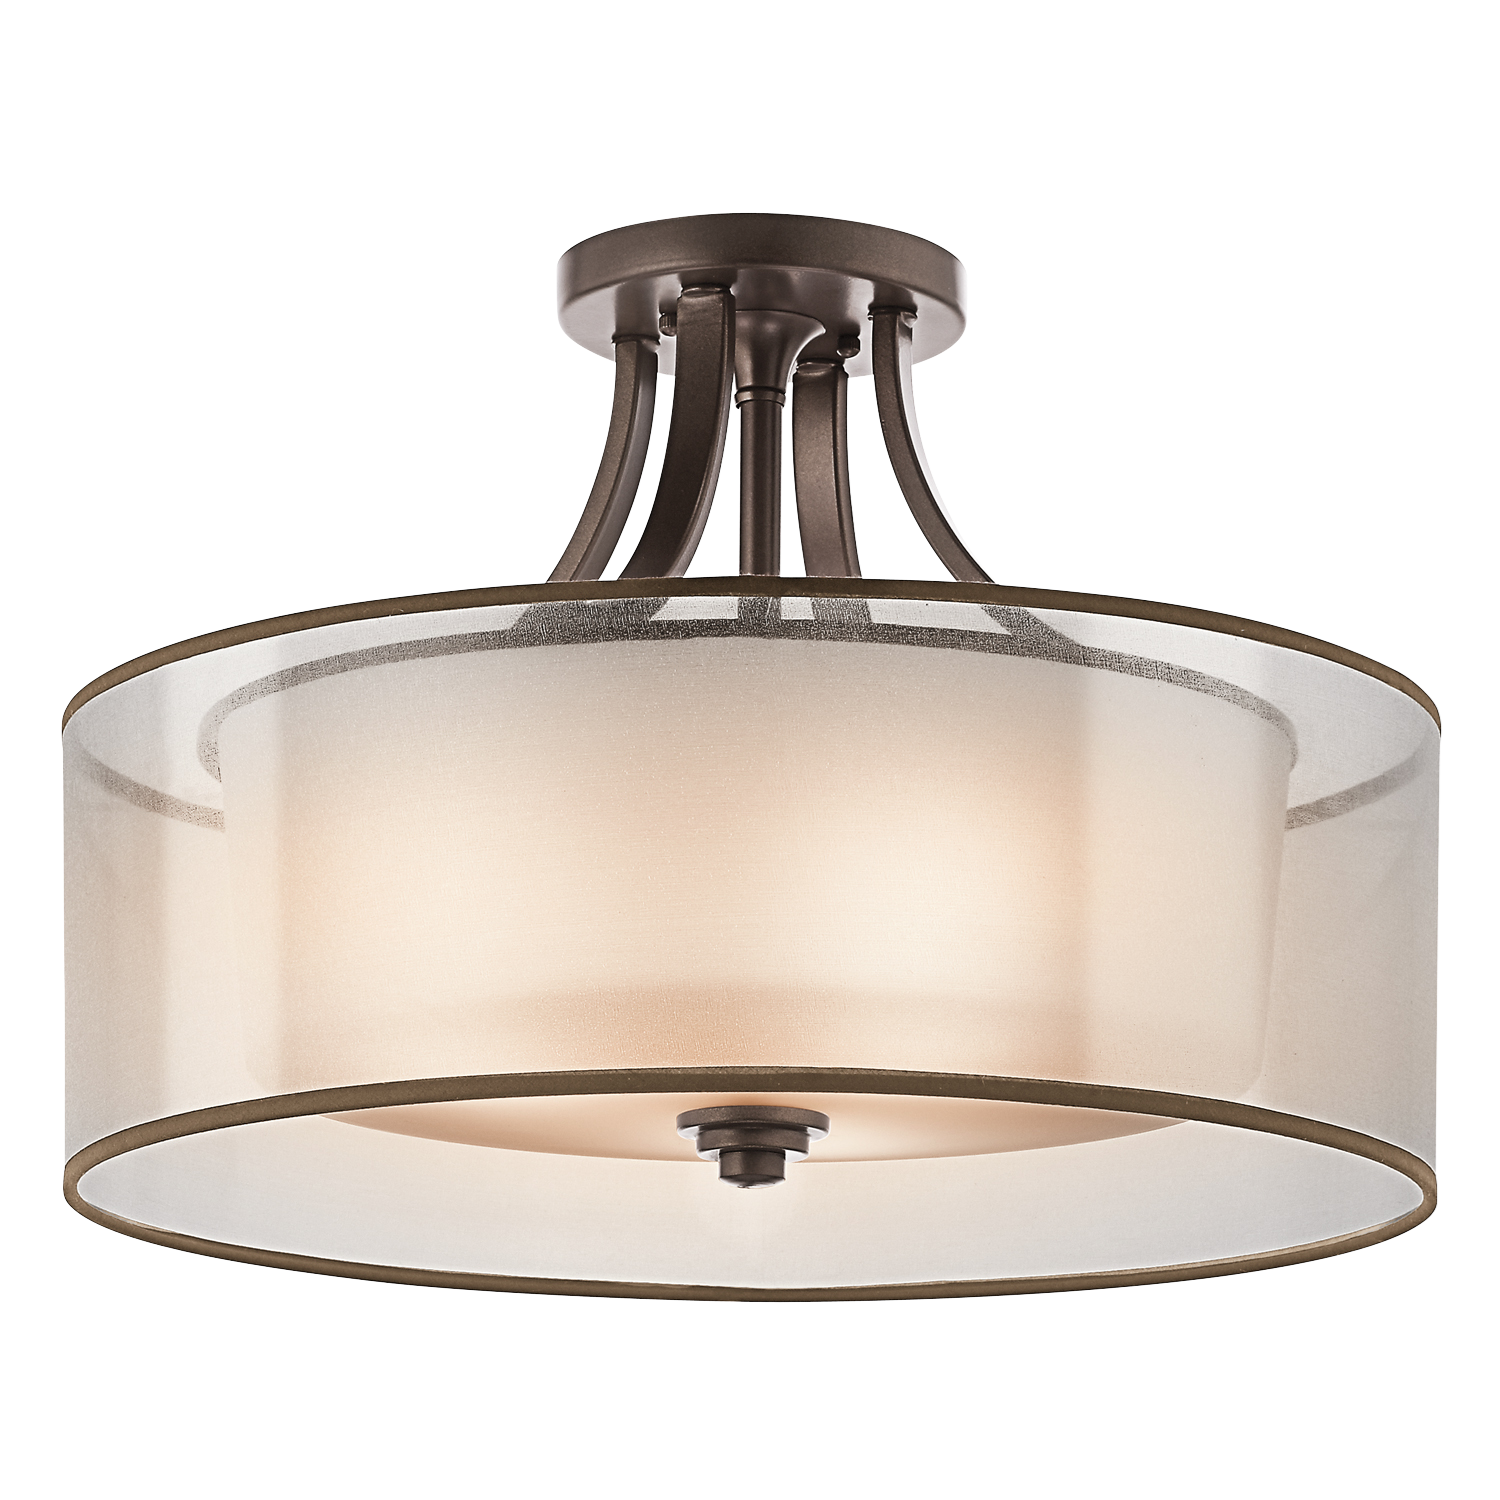 Kitchen Semi Flush Lighting Lacey 4 Light Semi Flush Ceiling Light Miz Kitchen Lights